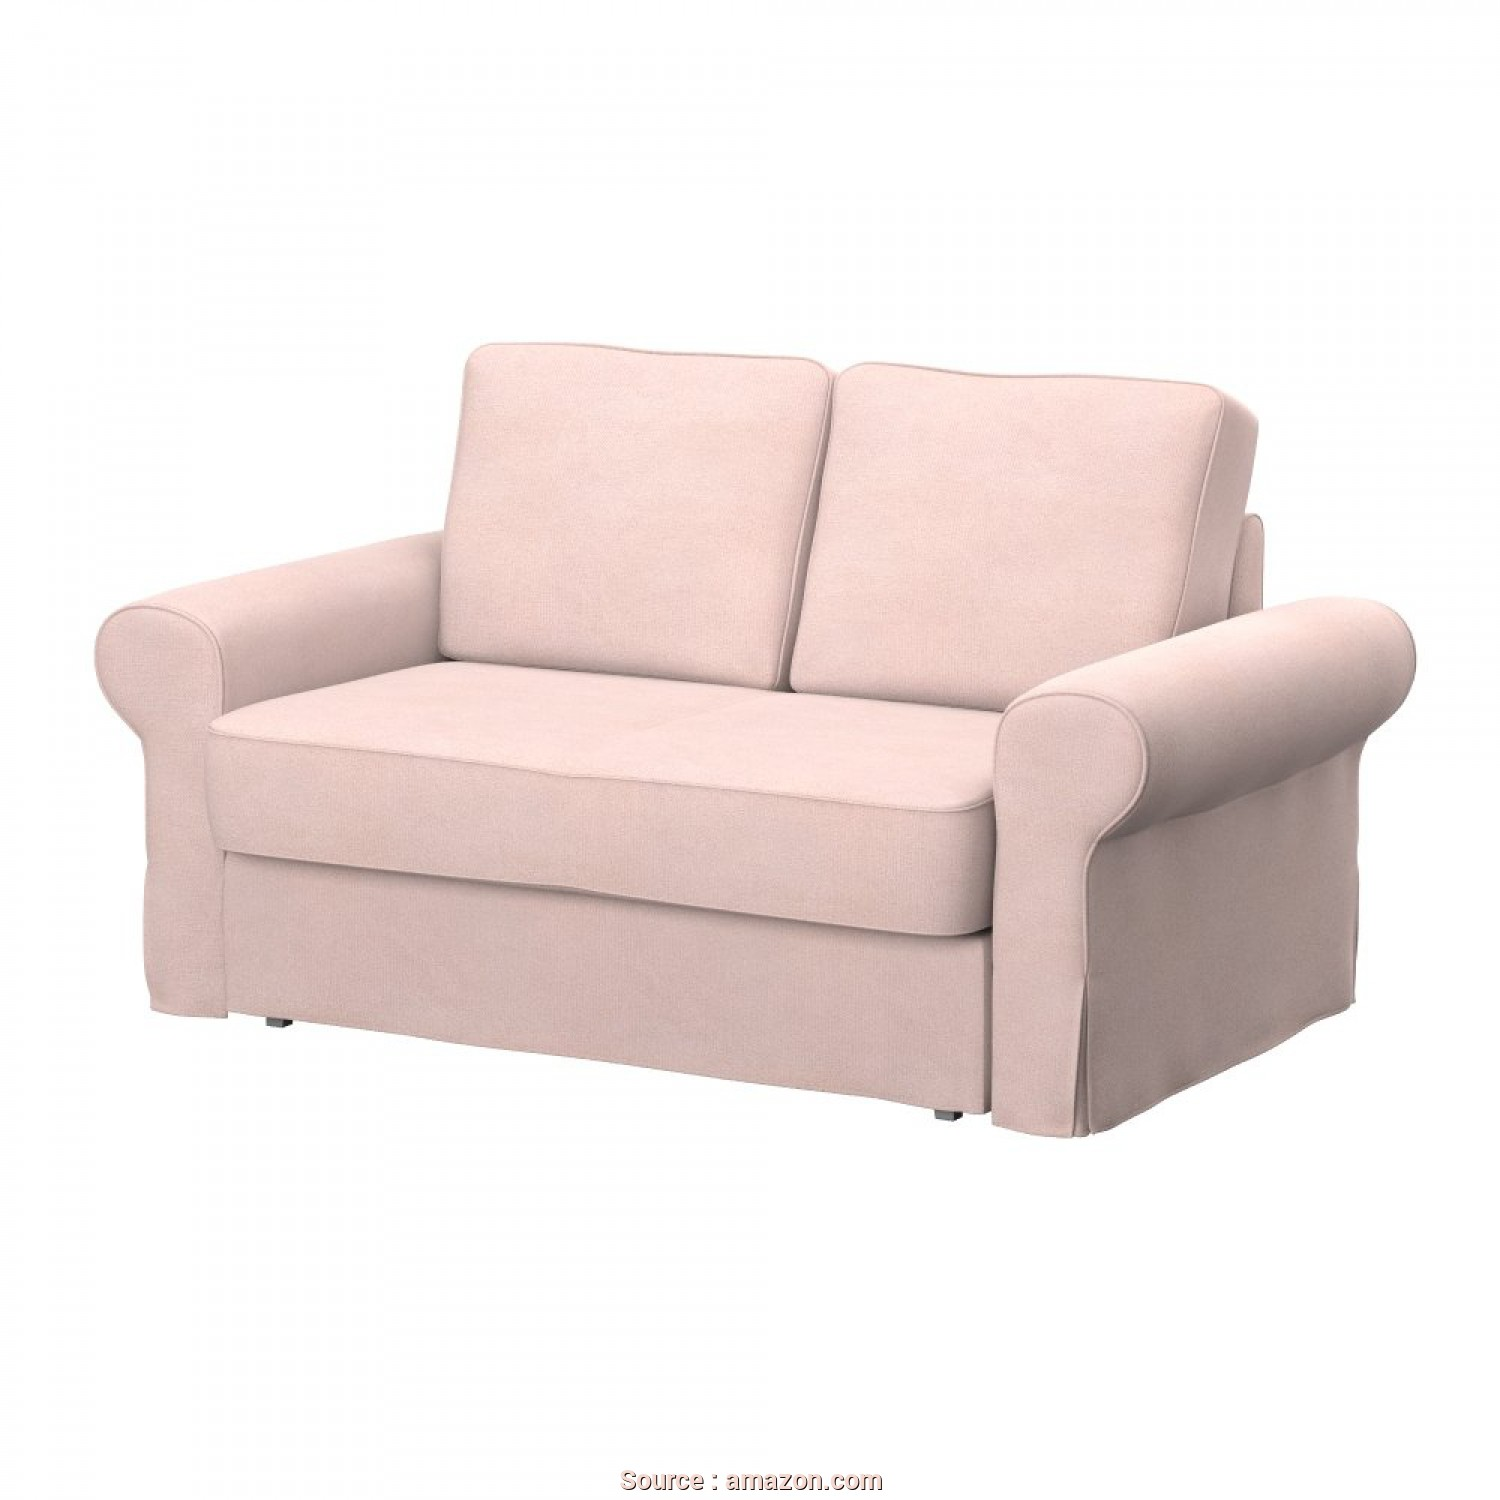 Ikea Backabro Sofa, Cover, Bello Amazon.Com: Soferia, Replacement Cover, IKEA BACKABRO 2-Seat Sofa-Bed, Glam Baby Pink: Home & Kitchen